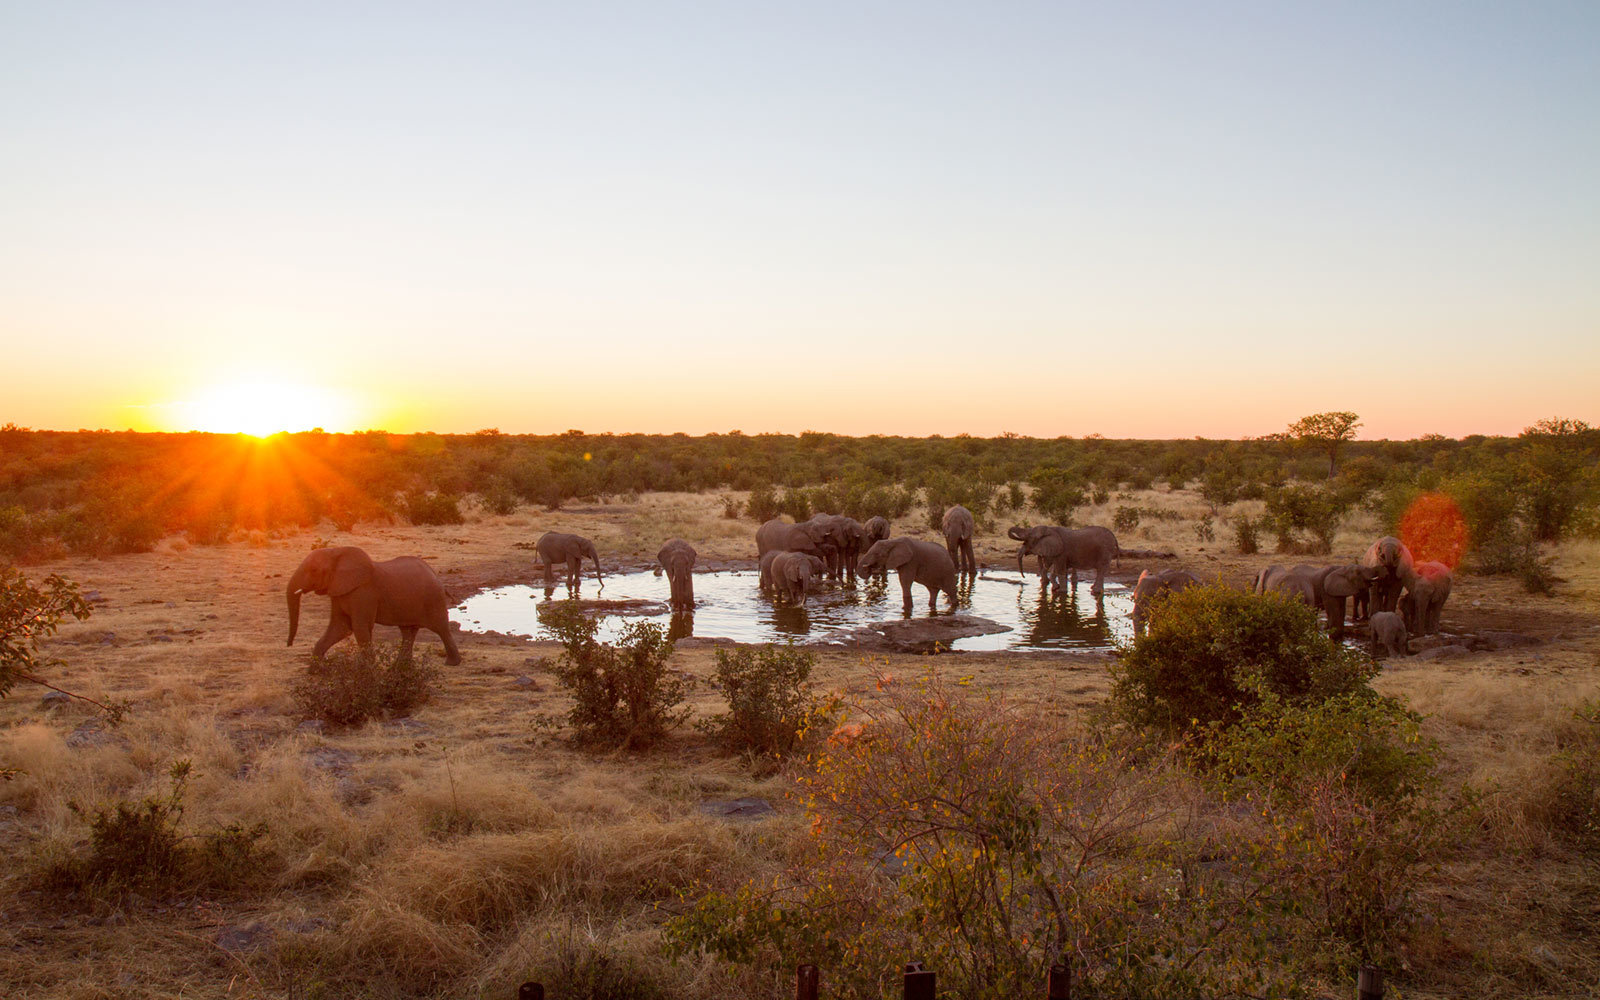 Elephants, Namibia